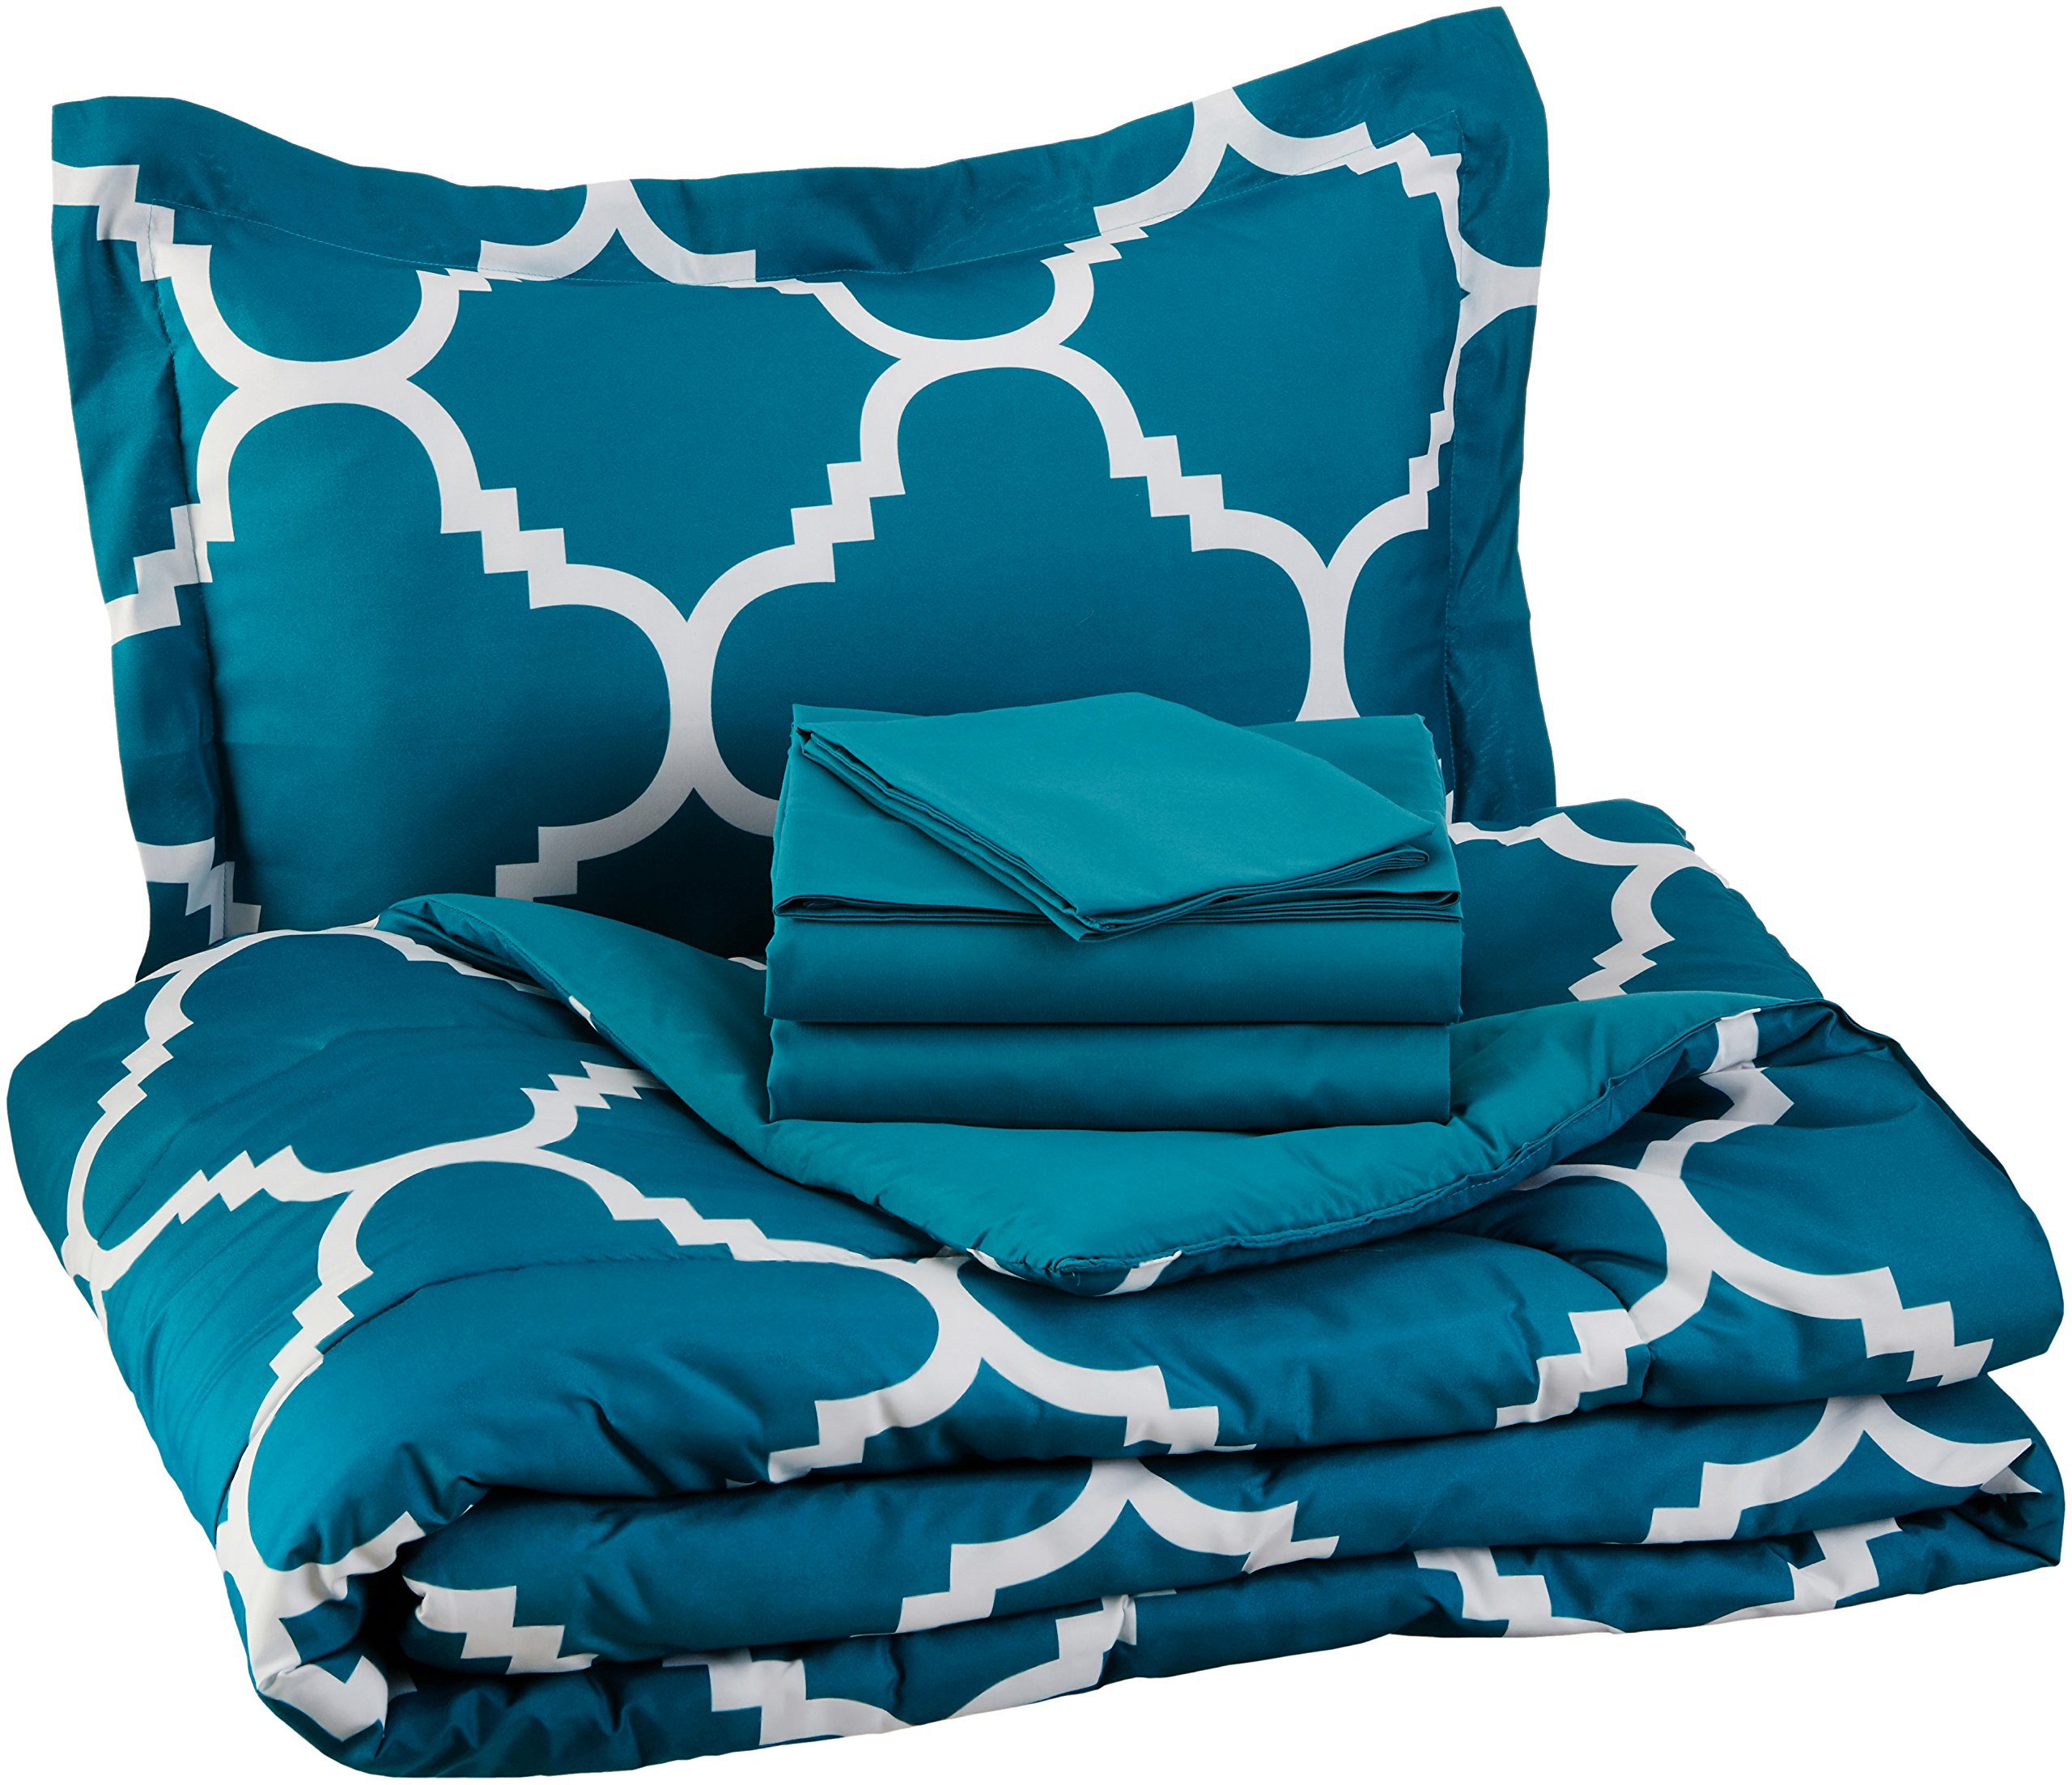 AmazonBasics 5-Piece Bed-In-A-Bag - Twin/Twin Extra-Long, Teal Trellis